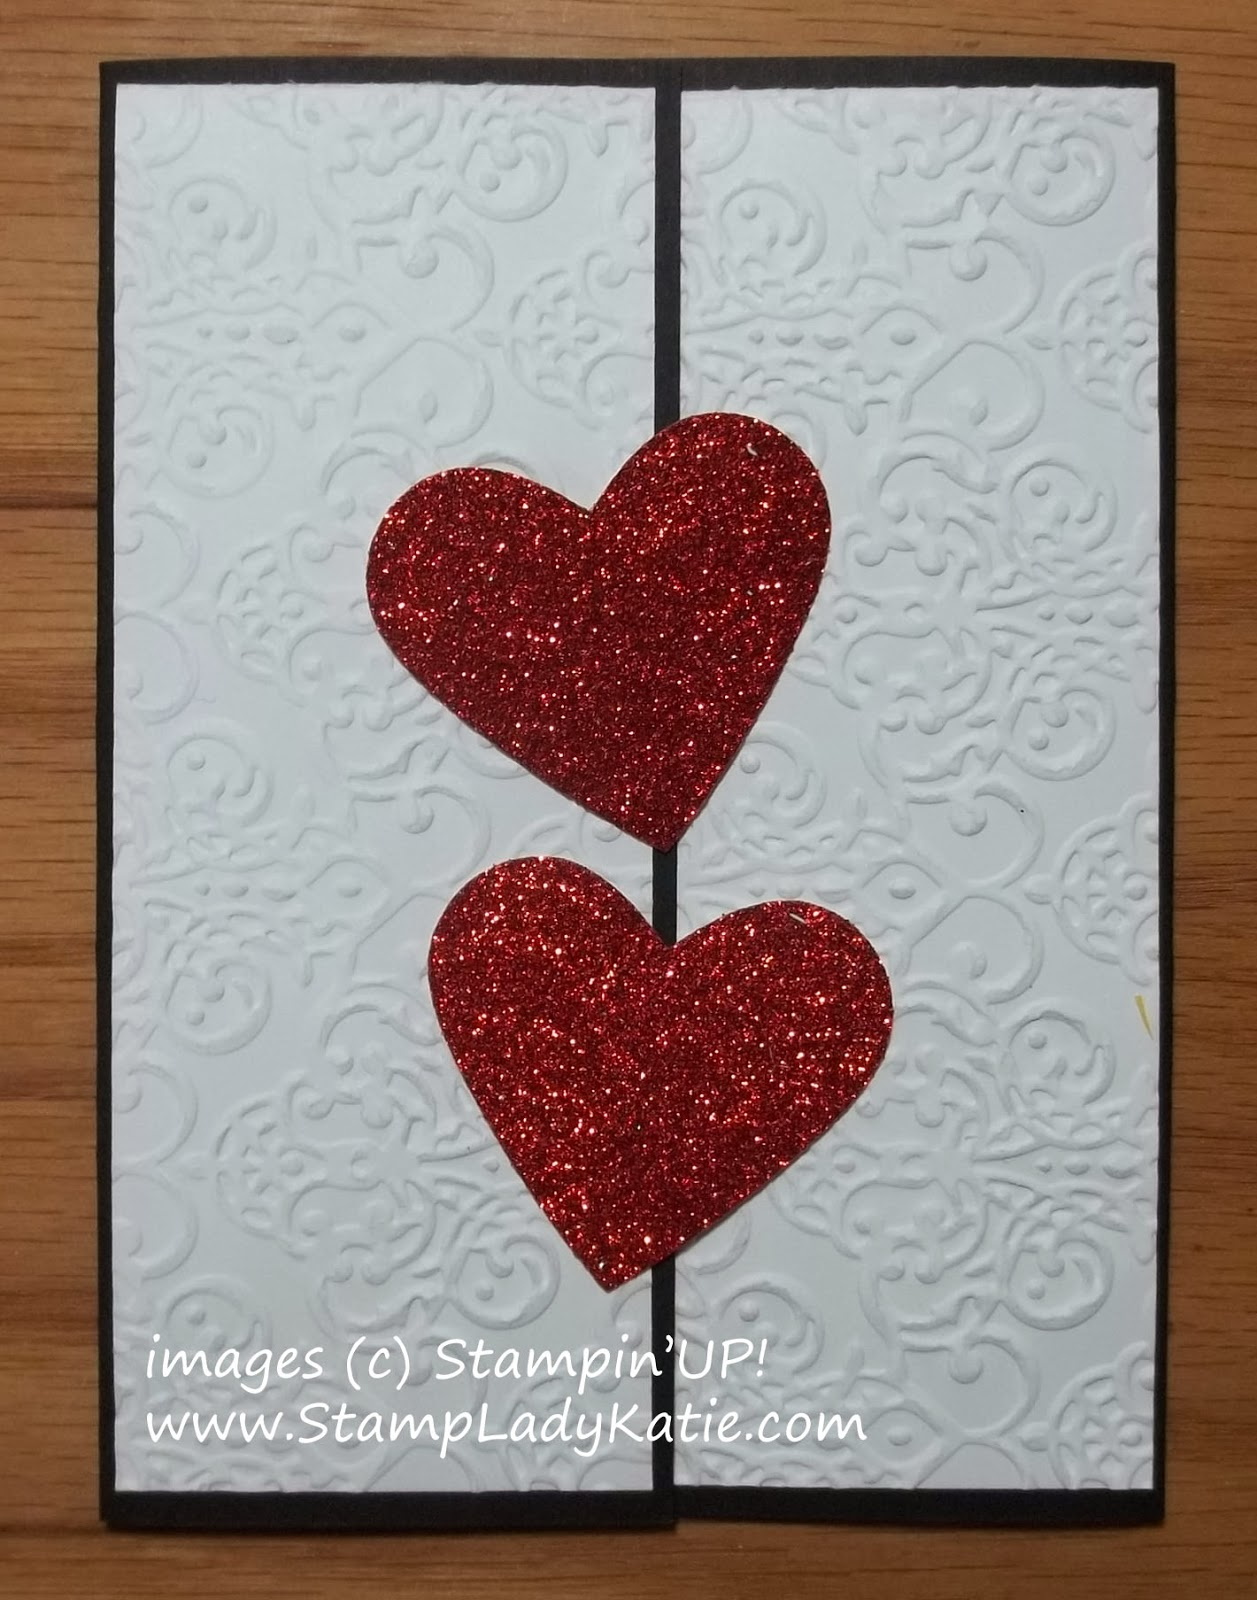 Gatefold Card with Red Glimmer Paper Hearts